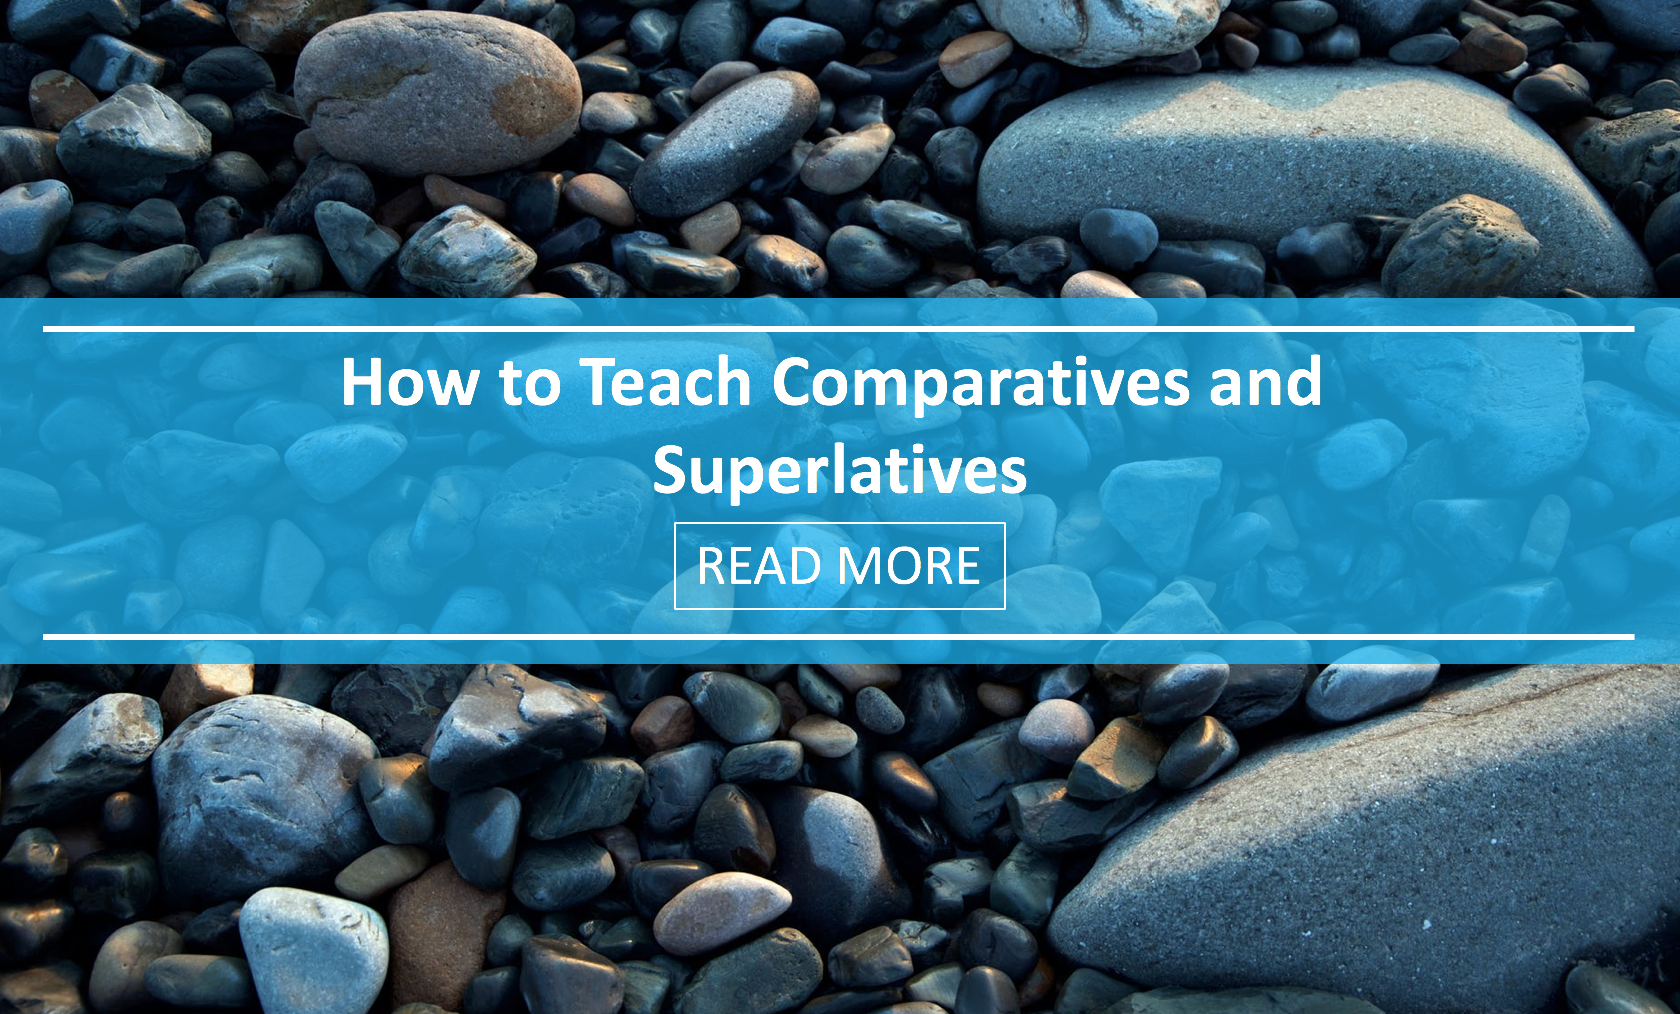 How to Teach Comparatives and Superlatives